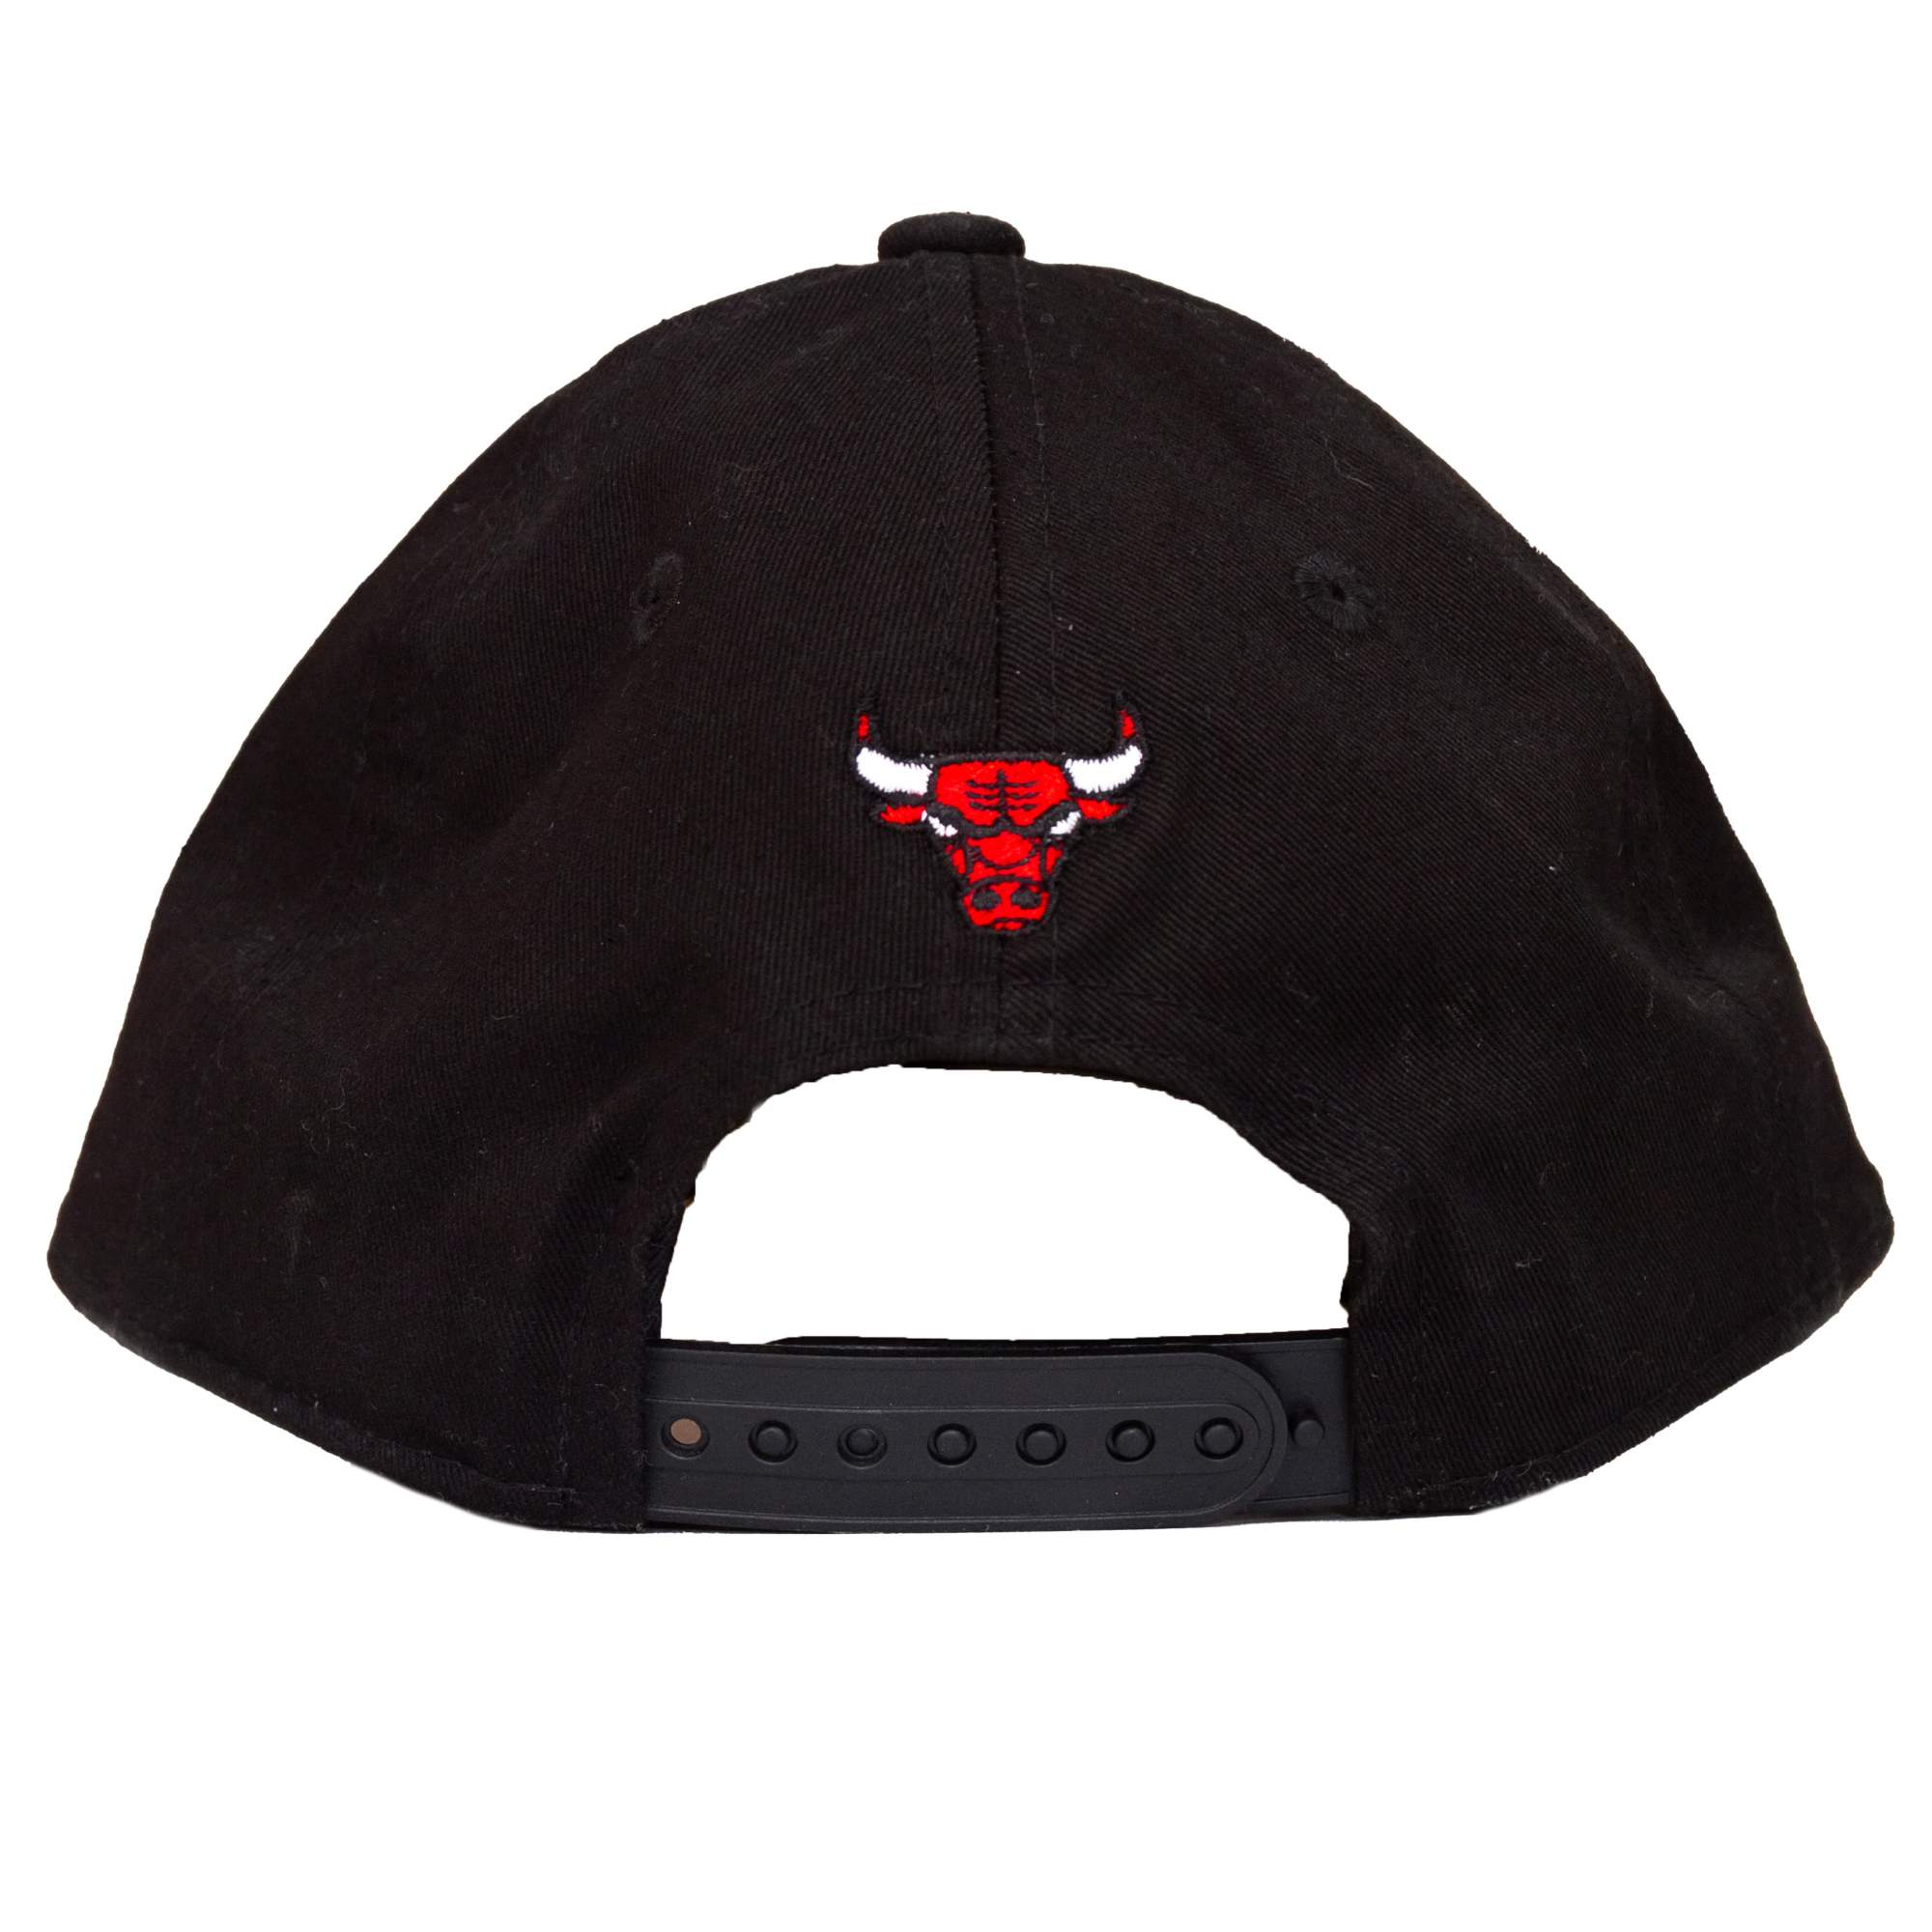 Boné New Era Bulls Preto